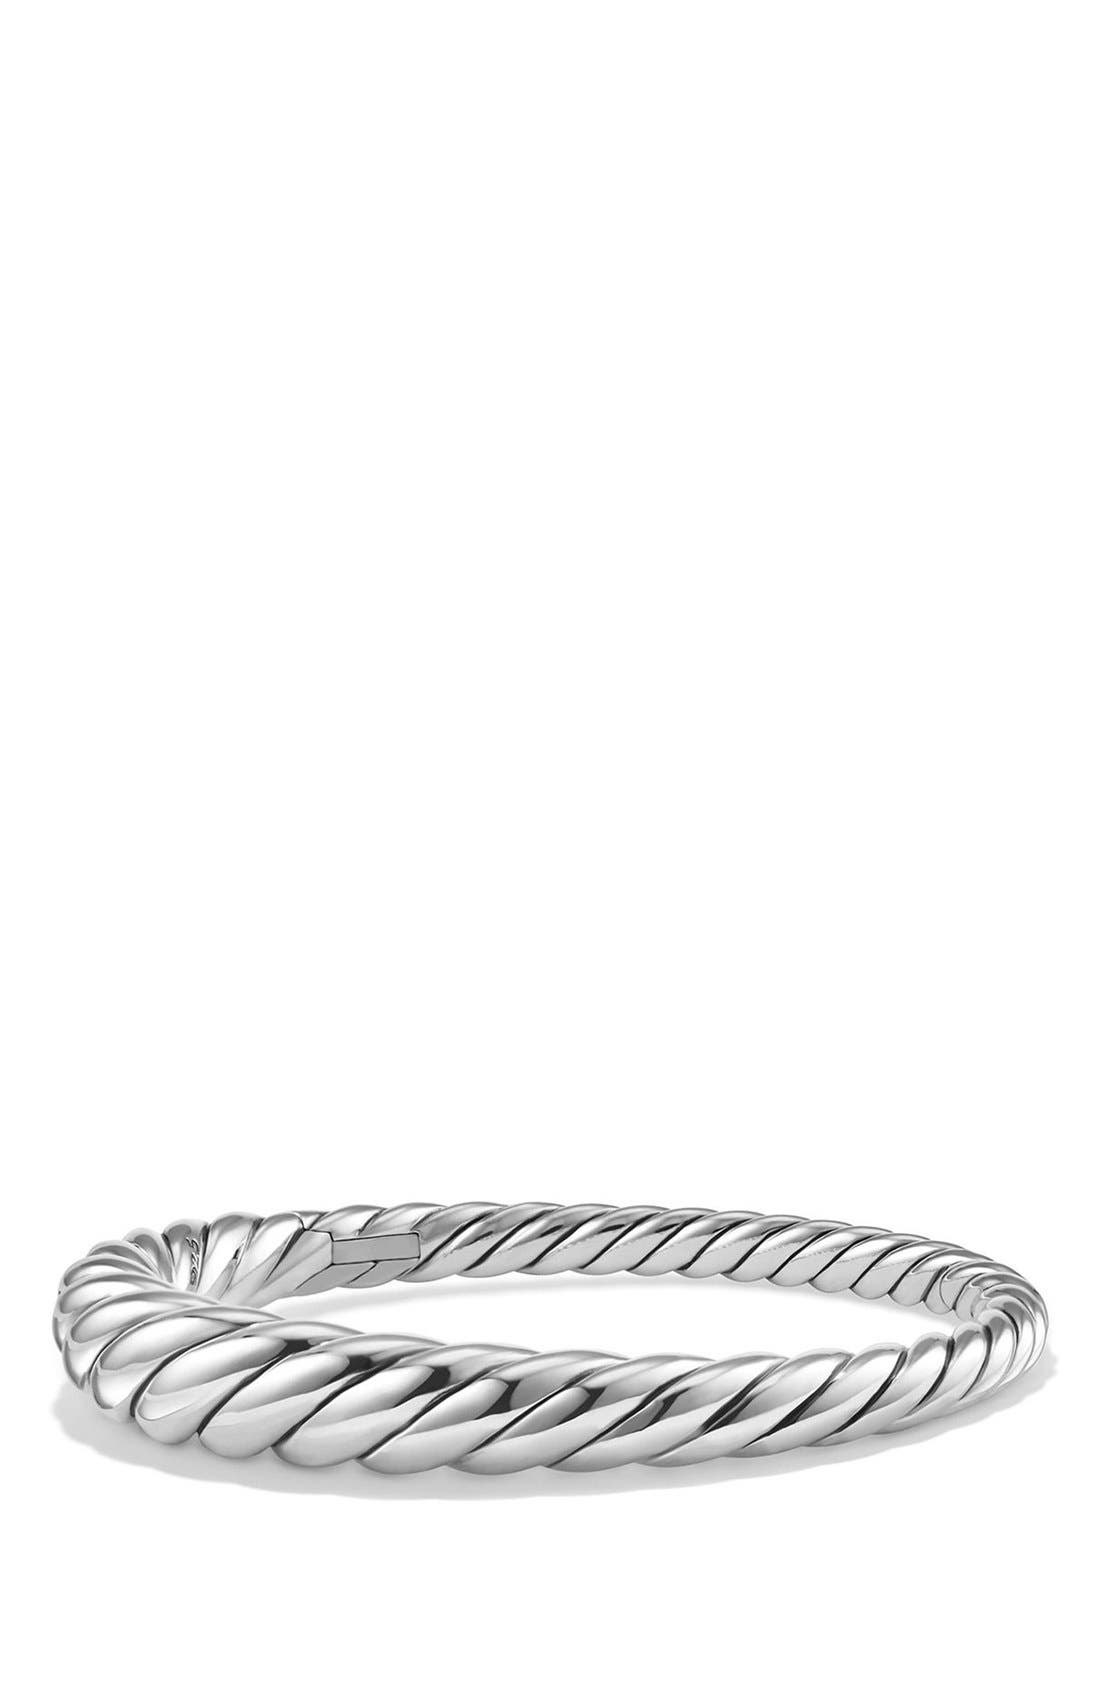 'Pure Form' Small Cable Bracelet,                             Main thumbnail 1, color,                             SILVER